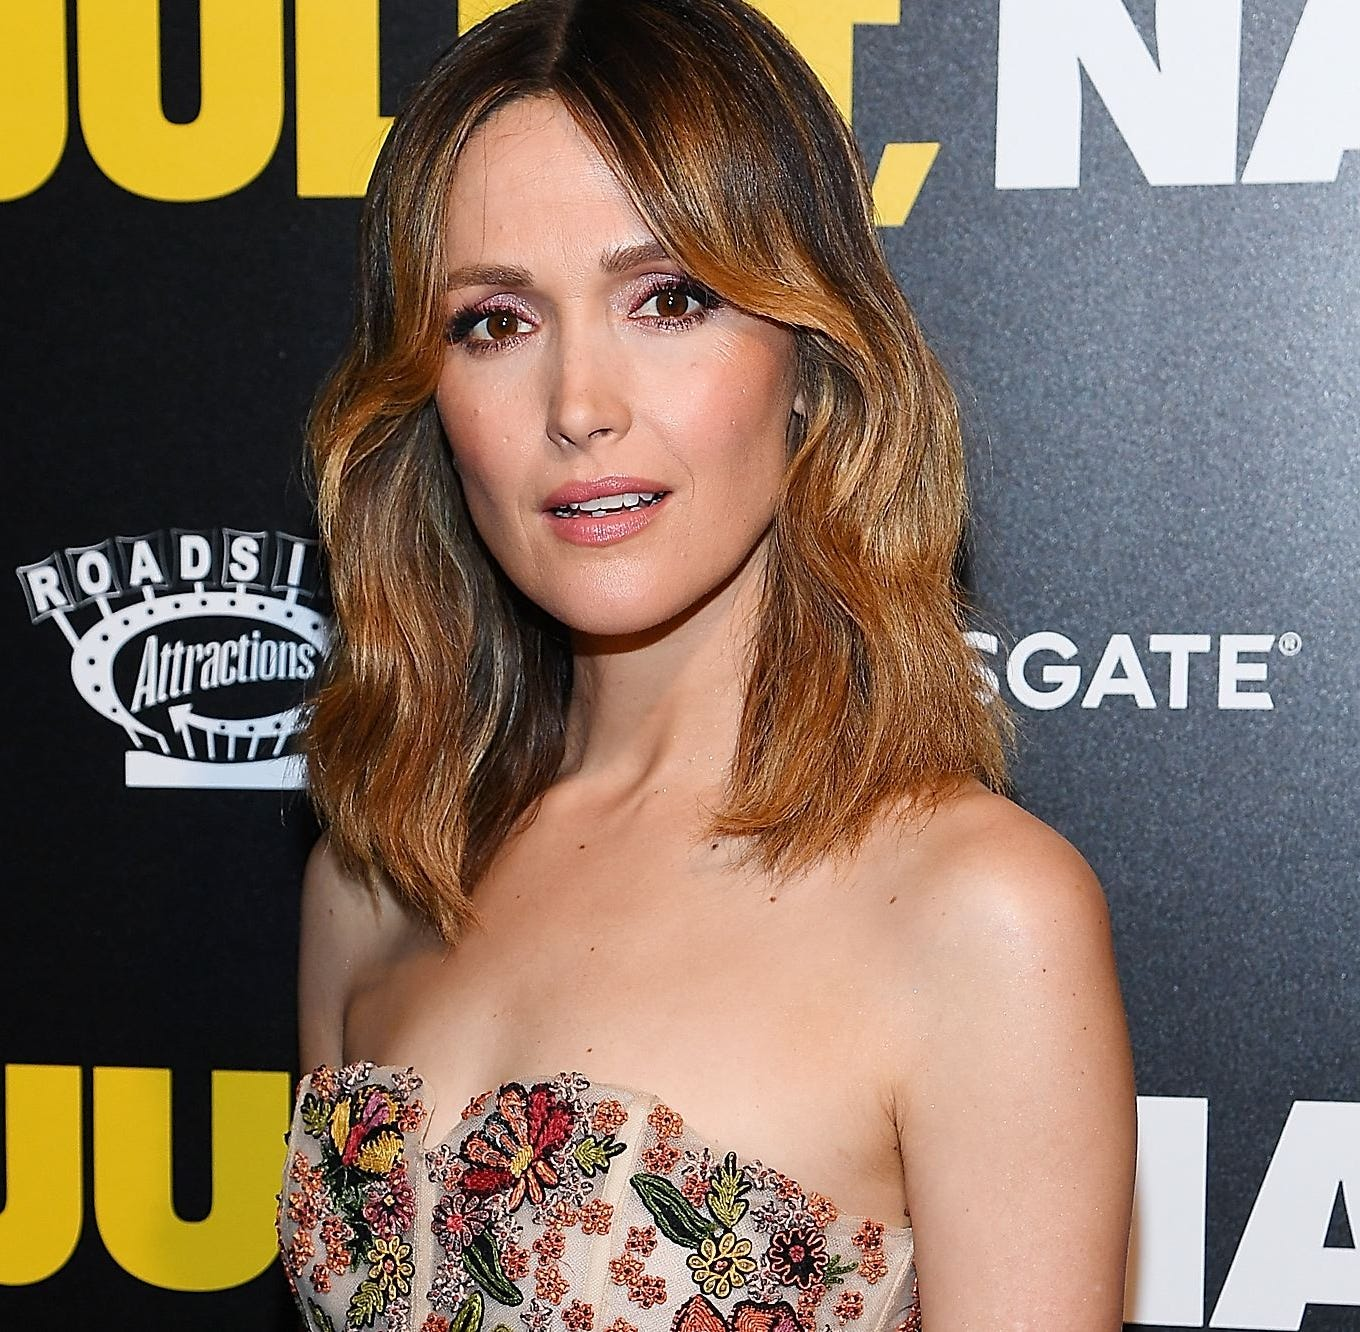 Rose Byrne was six-months pregnant while filming 'Juliet, Naked,' her character was 'so not'